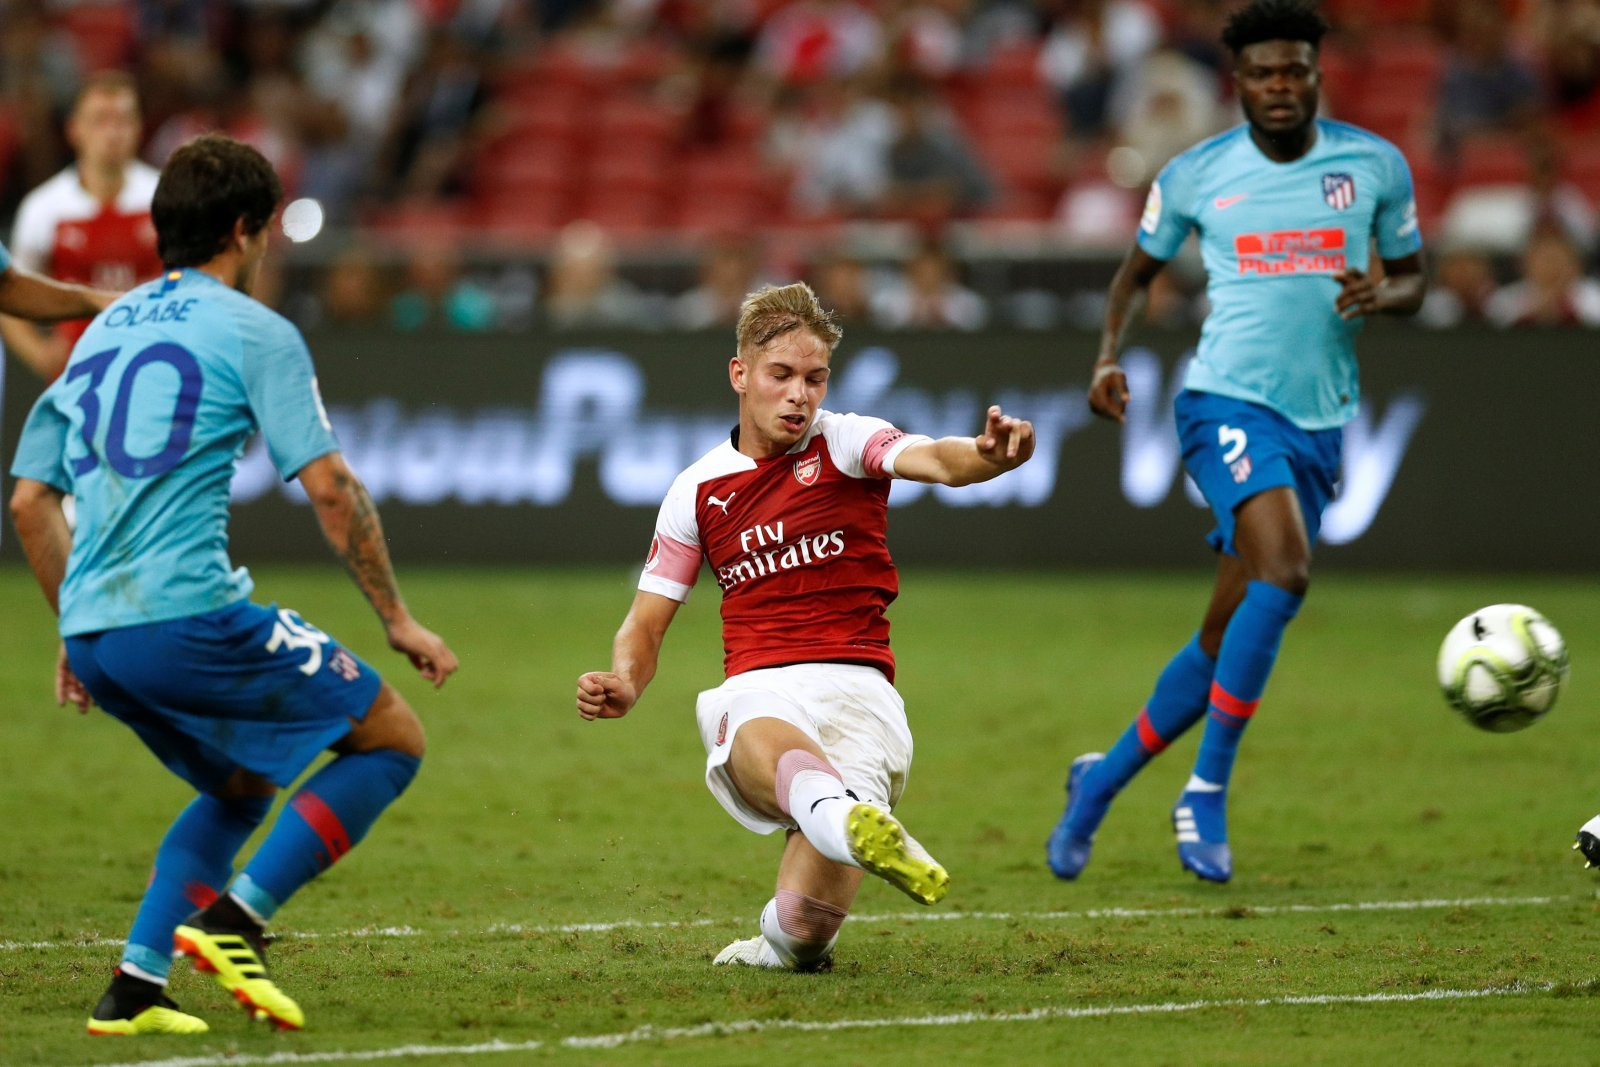 Emile Smith-Rowe's appearance has gotten Arsenal fans excited